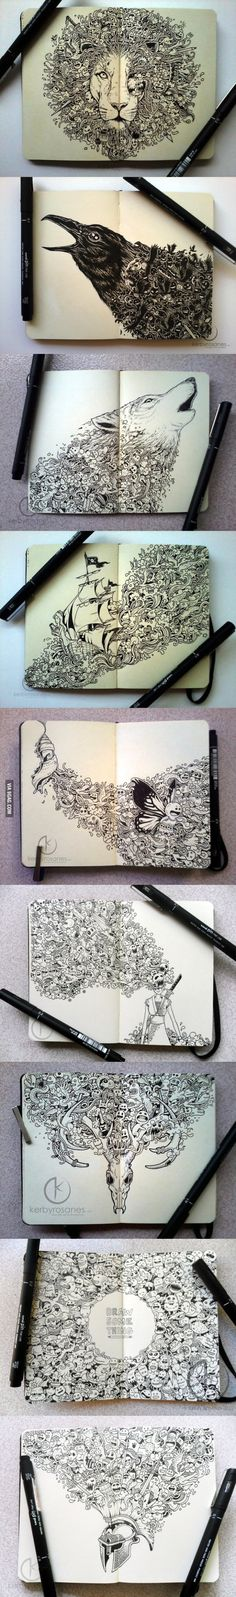 Incredible Moleskin drawings - oh my, next thing to do: learn how to draw like this.